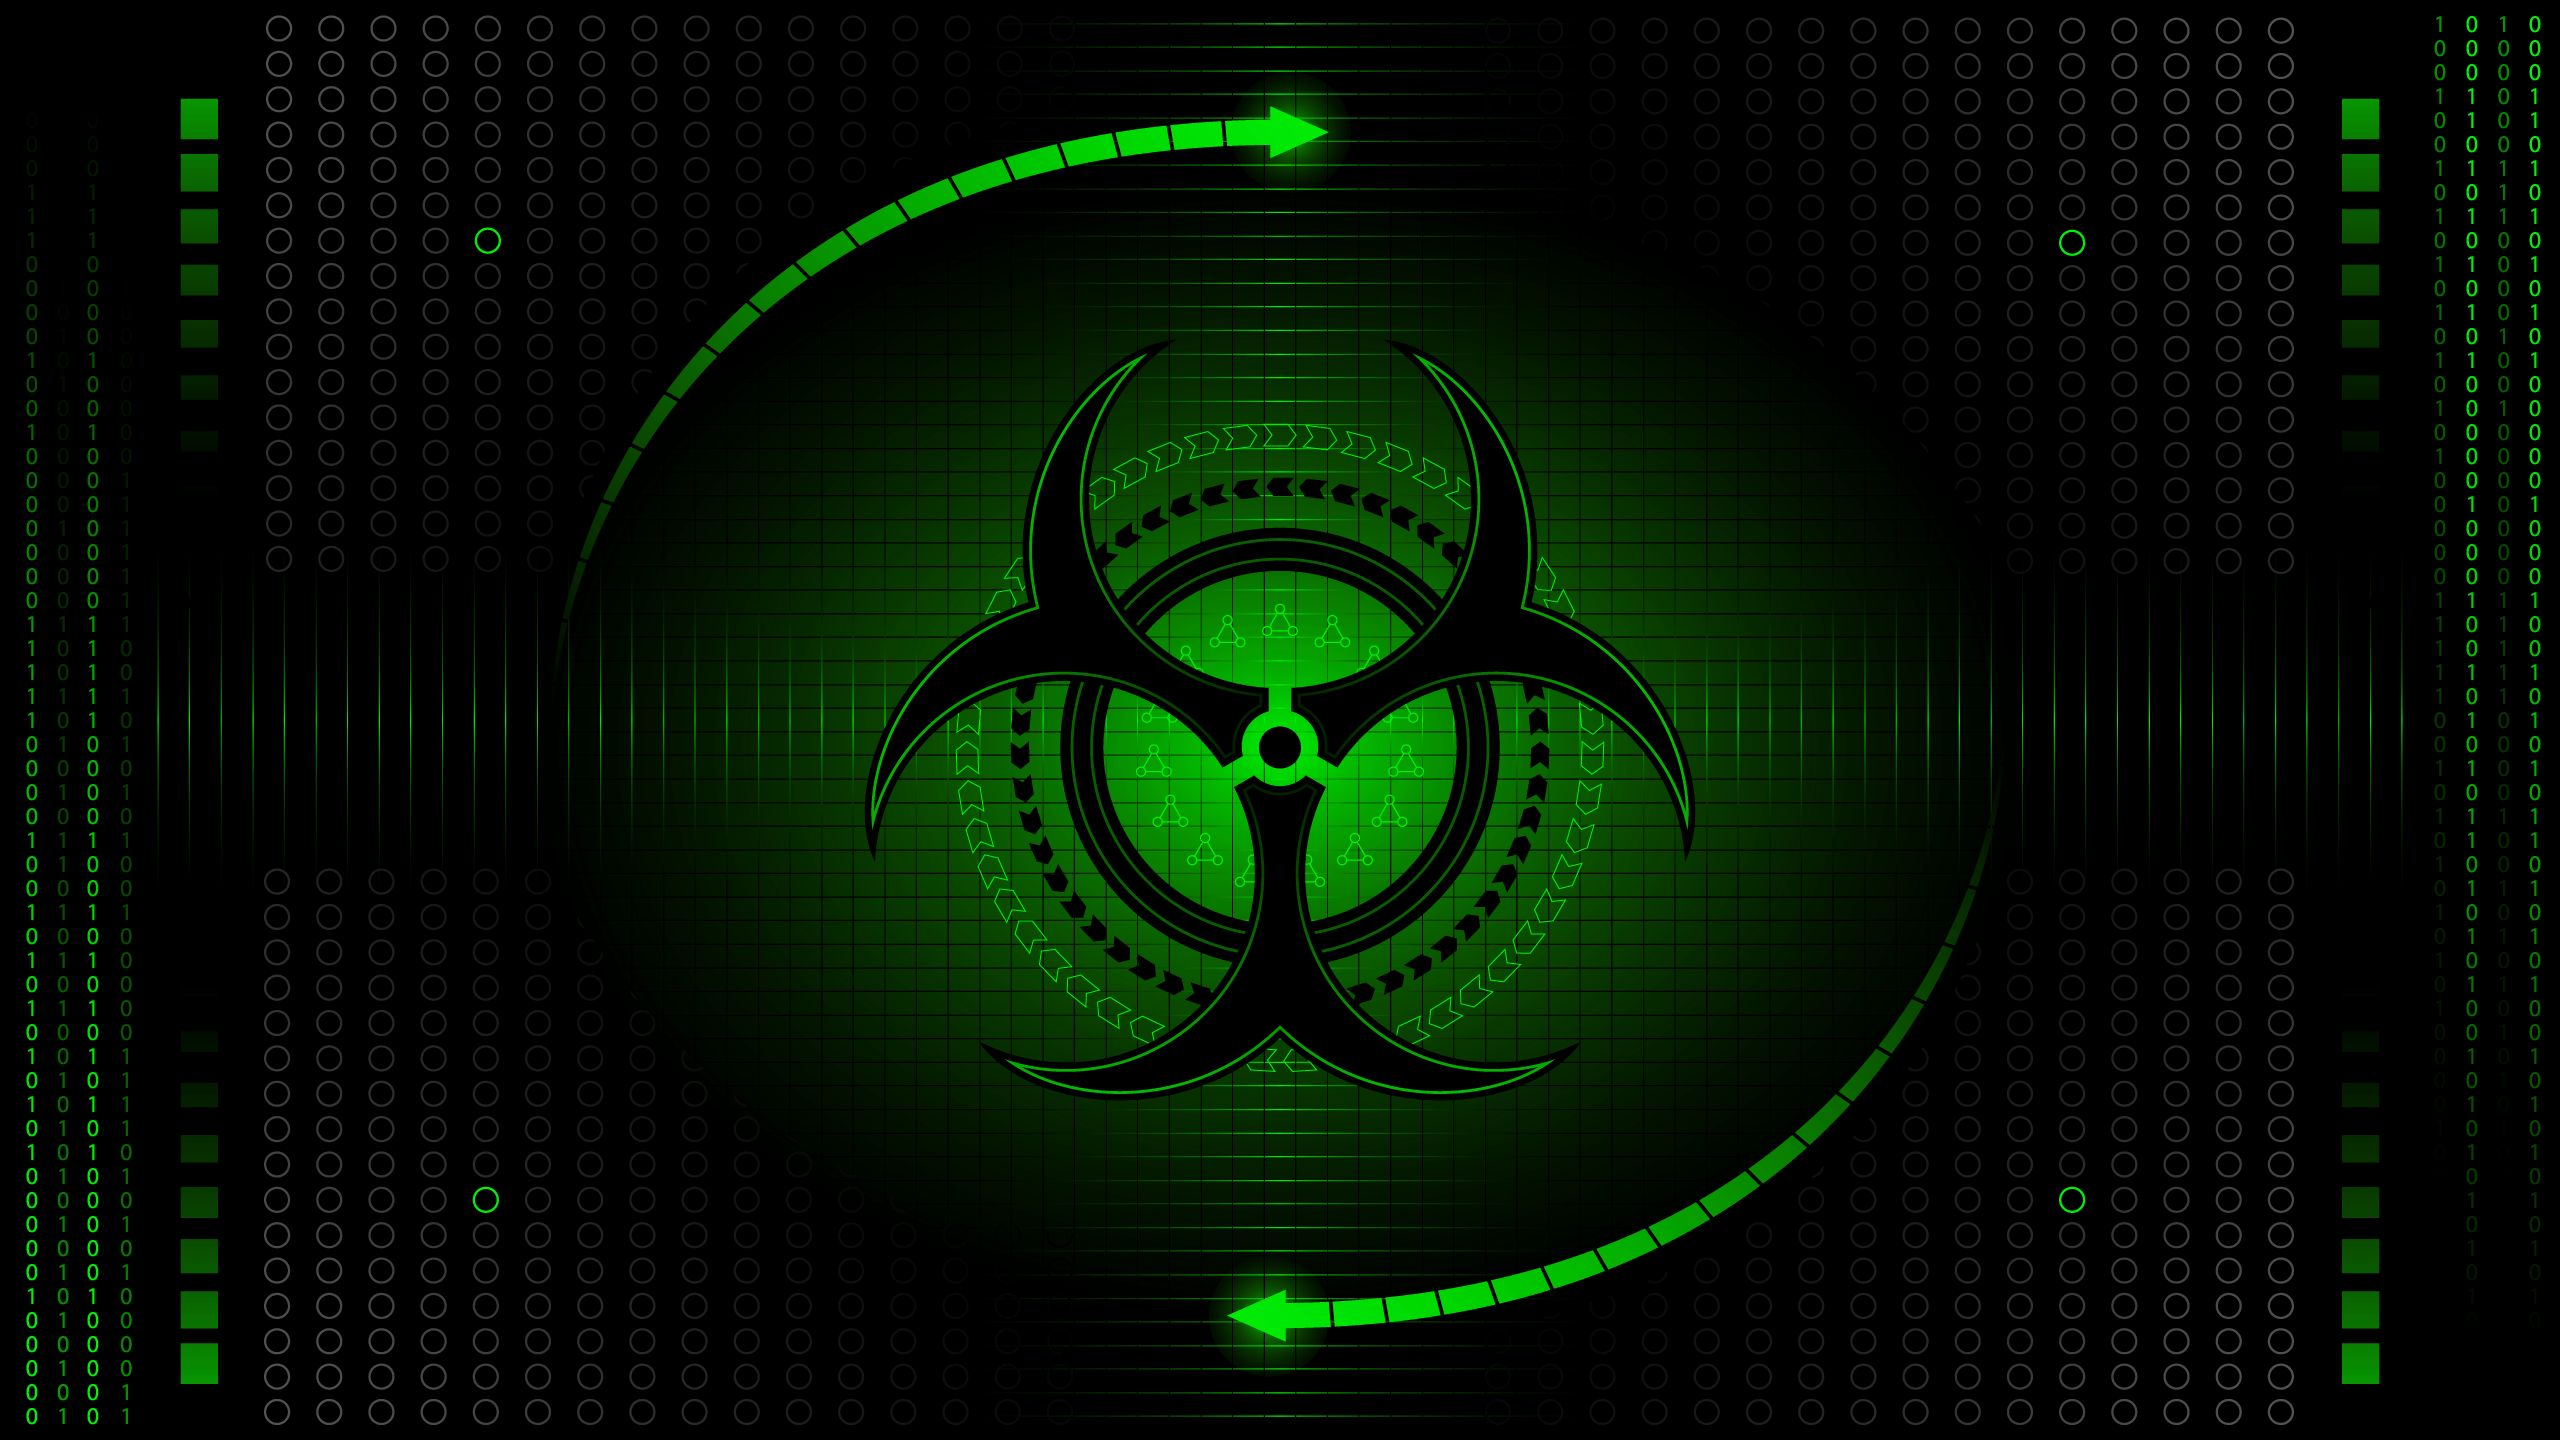 Back   Pictures for biohazard symbol wallpaper hd 2560x1440